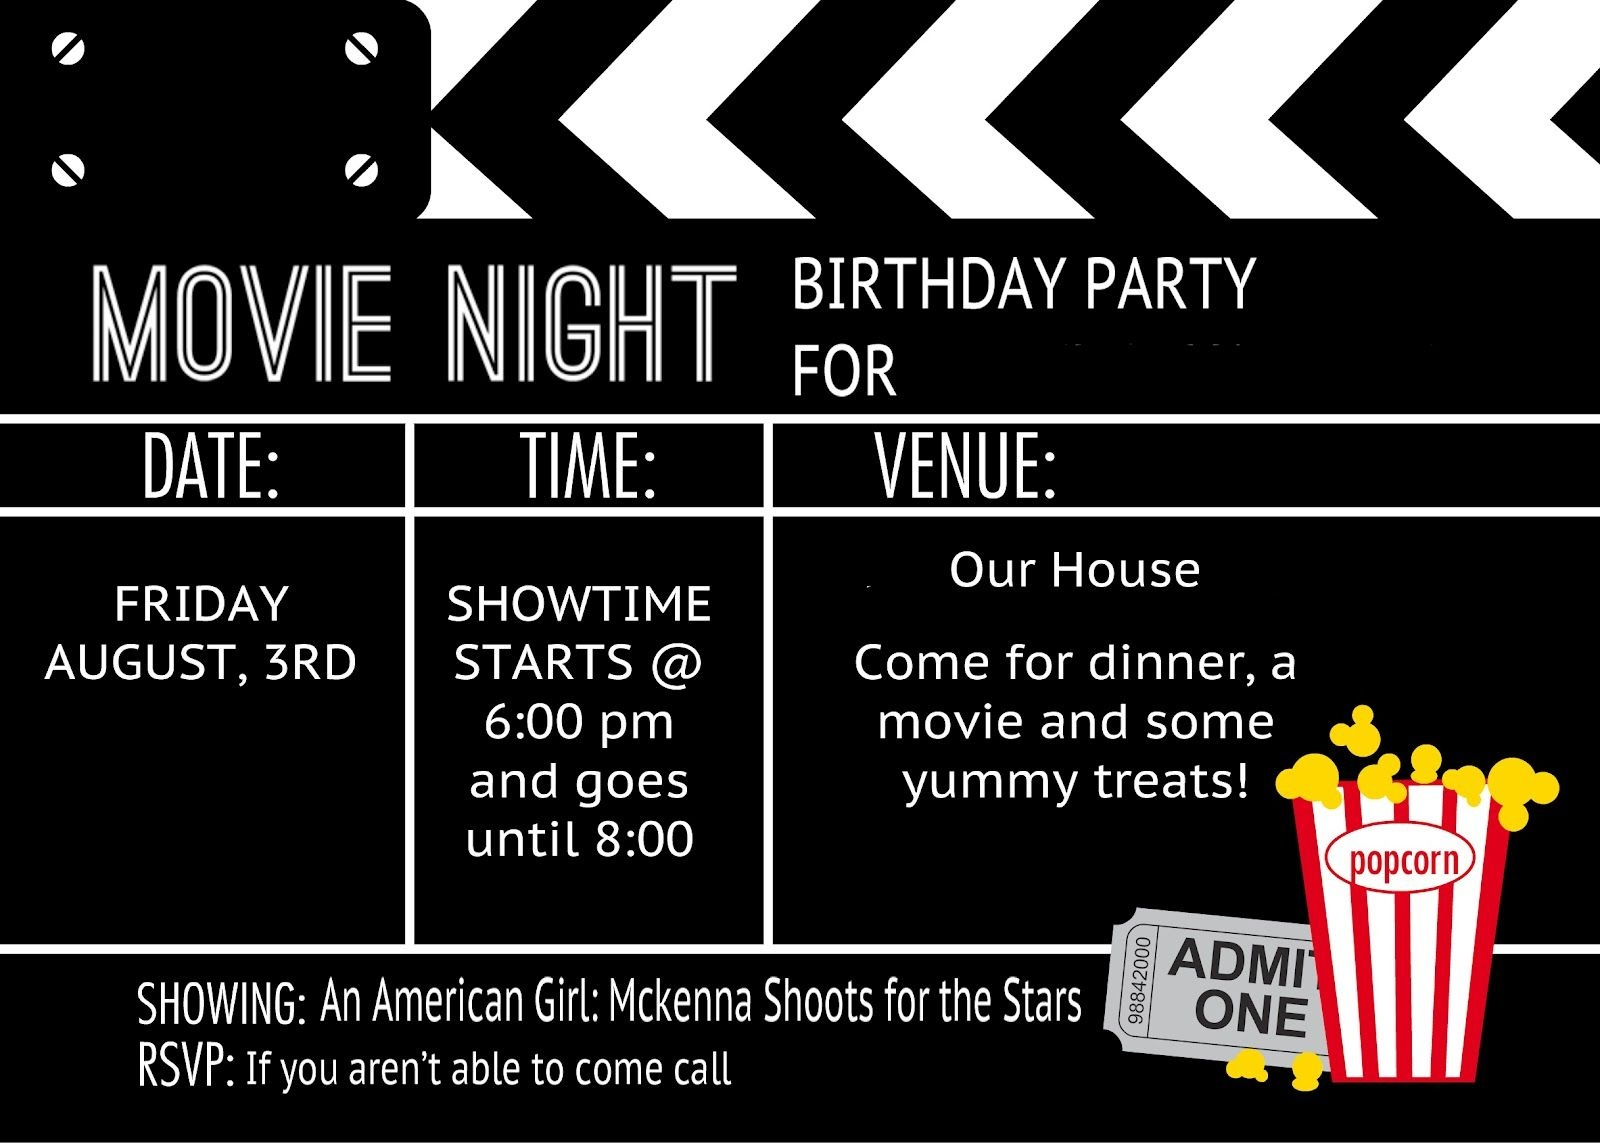 Birthday Party Invitation Templates Movie Theme | Kalli's 13Th - Movie Night Birthday Invitations Free Printable